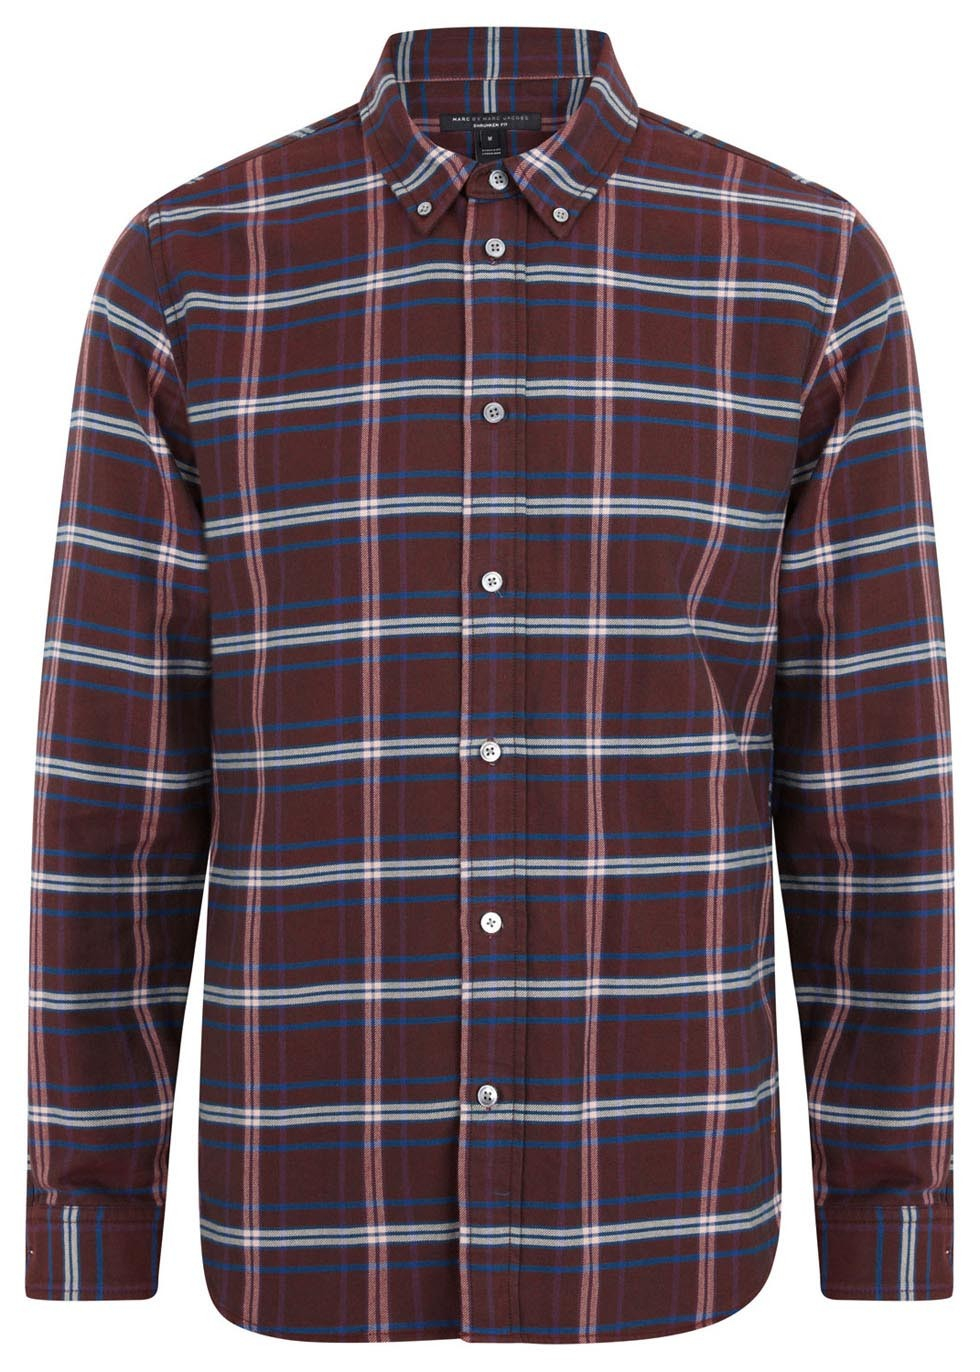 Marc by marc jacobs plum white and blue plaid cotton shirt for Red white and blue plaid shirt